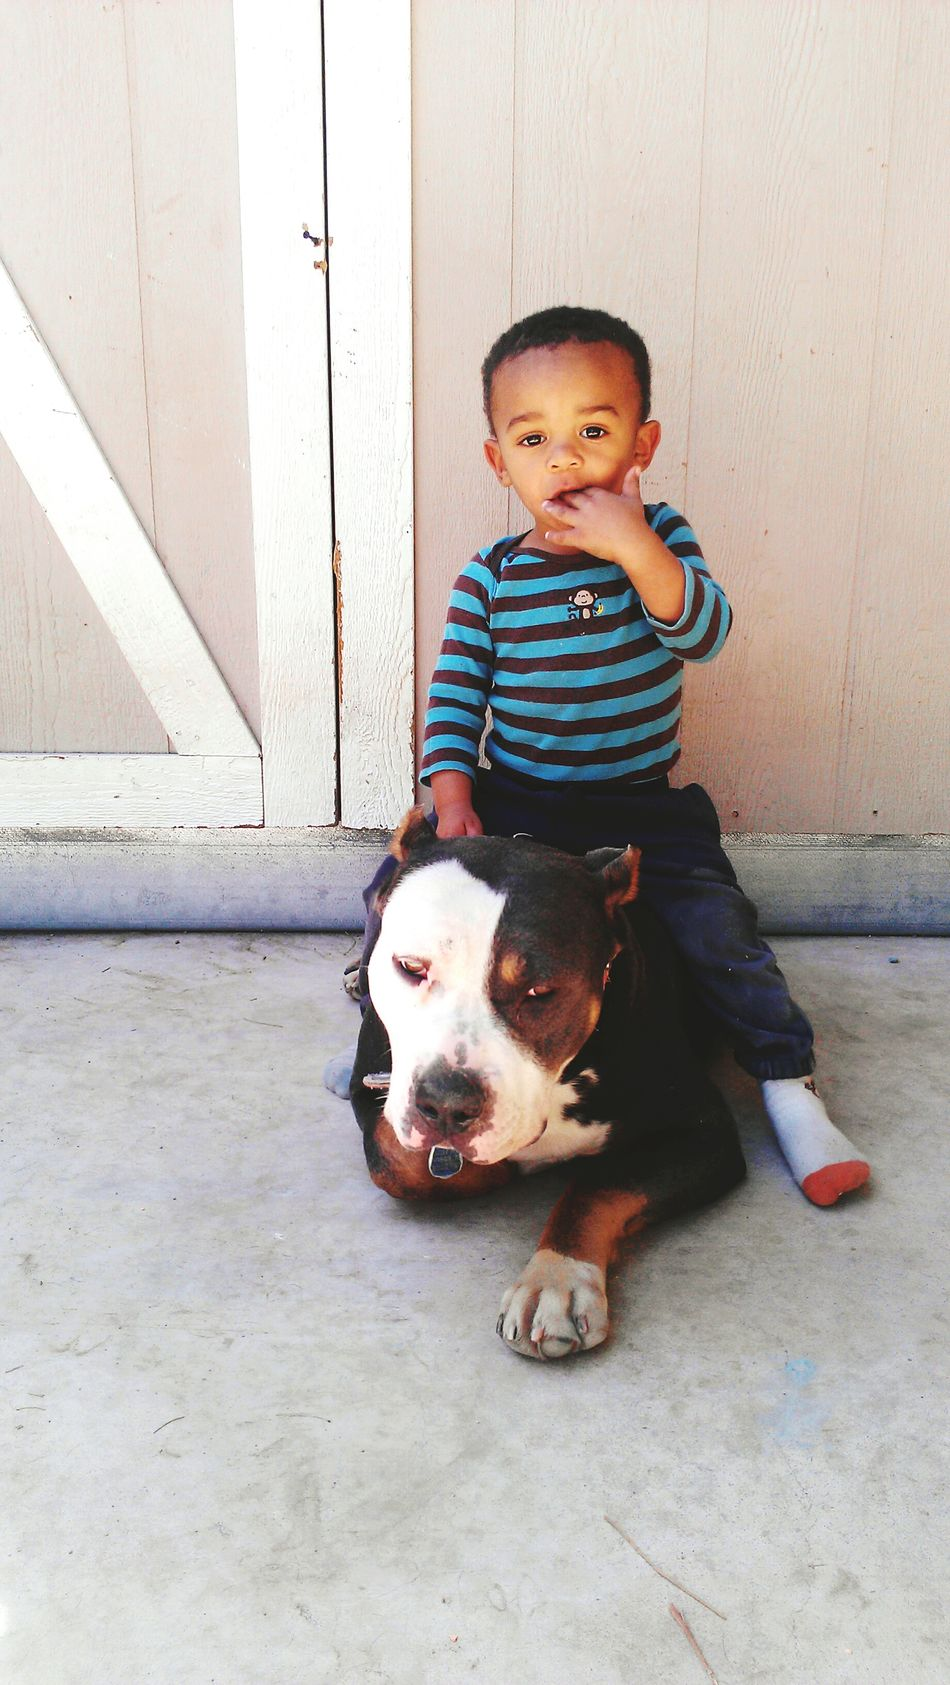 Pit Pitbull Pitbulls Pit Bull Pit Bulls Kids And Pets DogLove Bullies Two Faced Tri Colors A Boy And His Dog Boy And Dog Baby Boy Baby With Dog Animal Photography Kid Photography Child Portrait Portrait Of A Child Portrait Of A Dog Outside Outdoor Photography Sitting With My Dog Female Dog Big Dog Little Boy